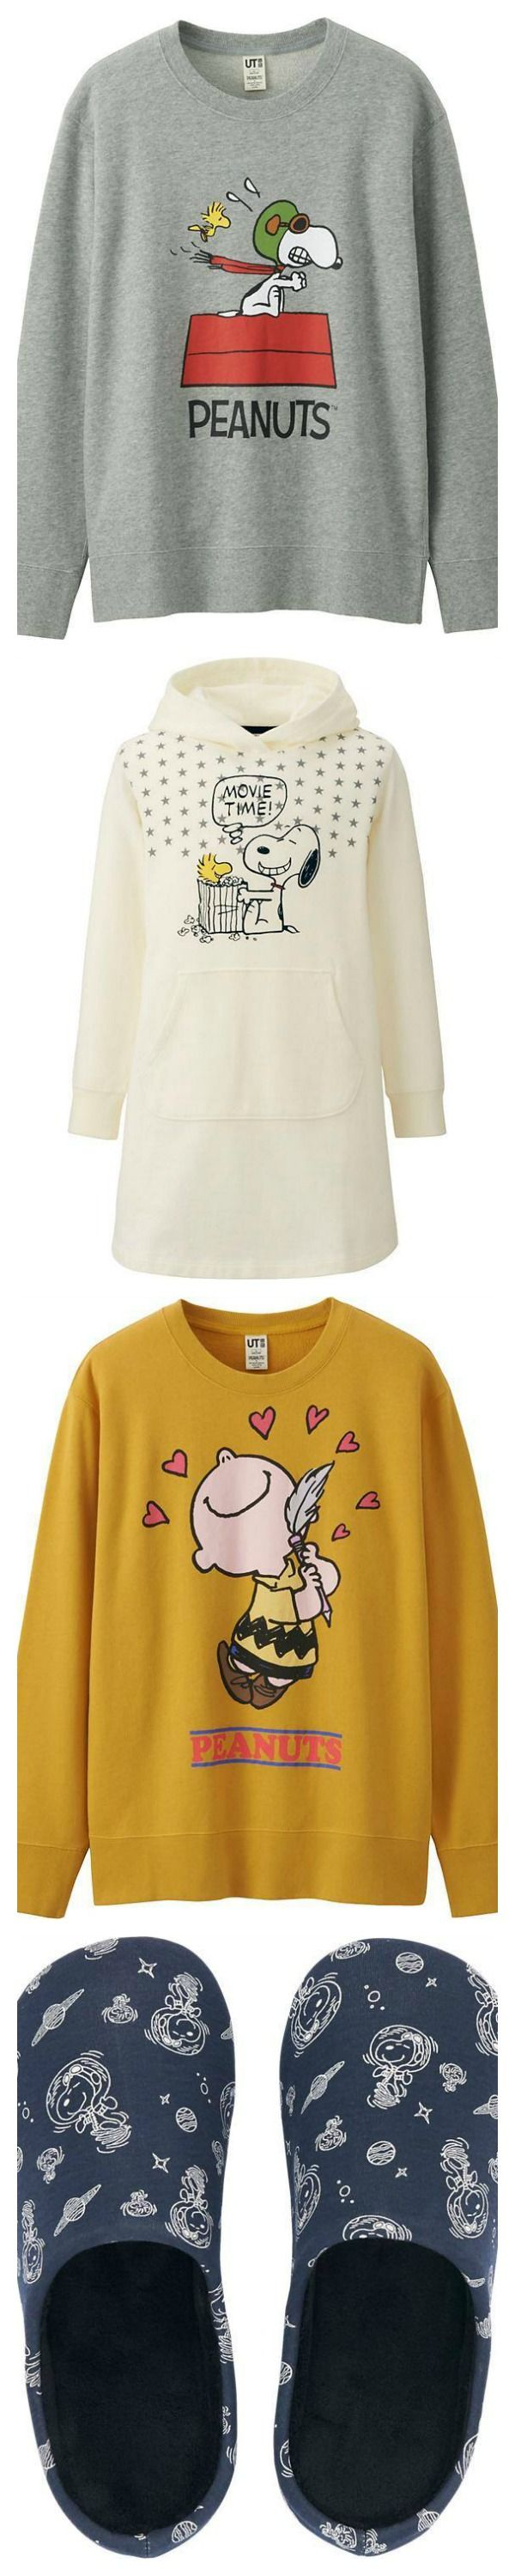 The Peanuts Movie has inspired the latest collection of t-shirts, sweatshirts, slippers and girls dresses featuring Snoopy and Charlie Brown. Visit CollectPeanuts.com to start your gift list and support our site. Thank you!